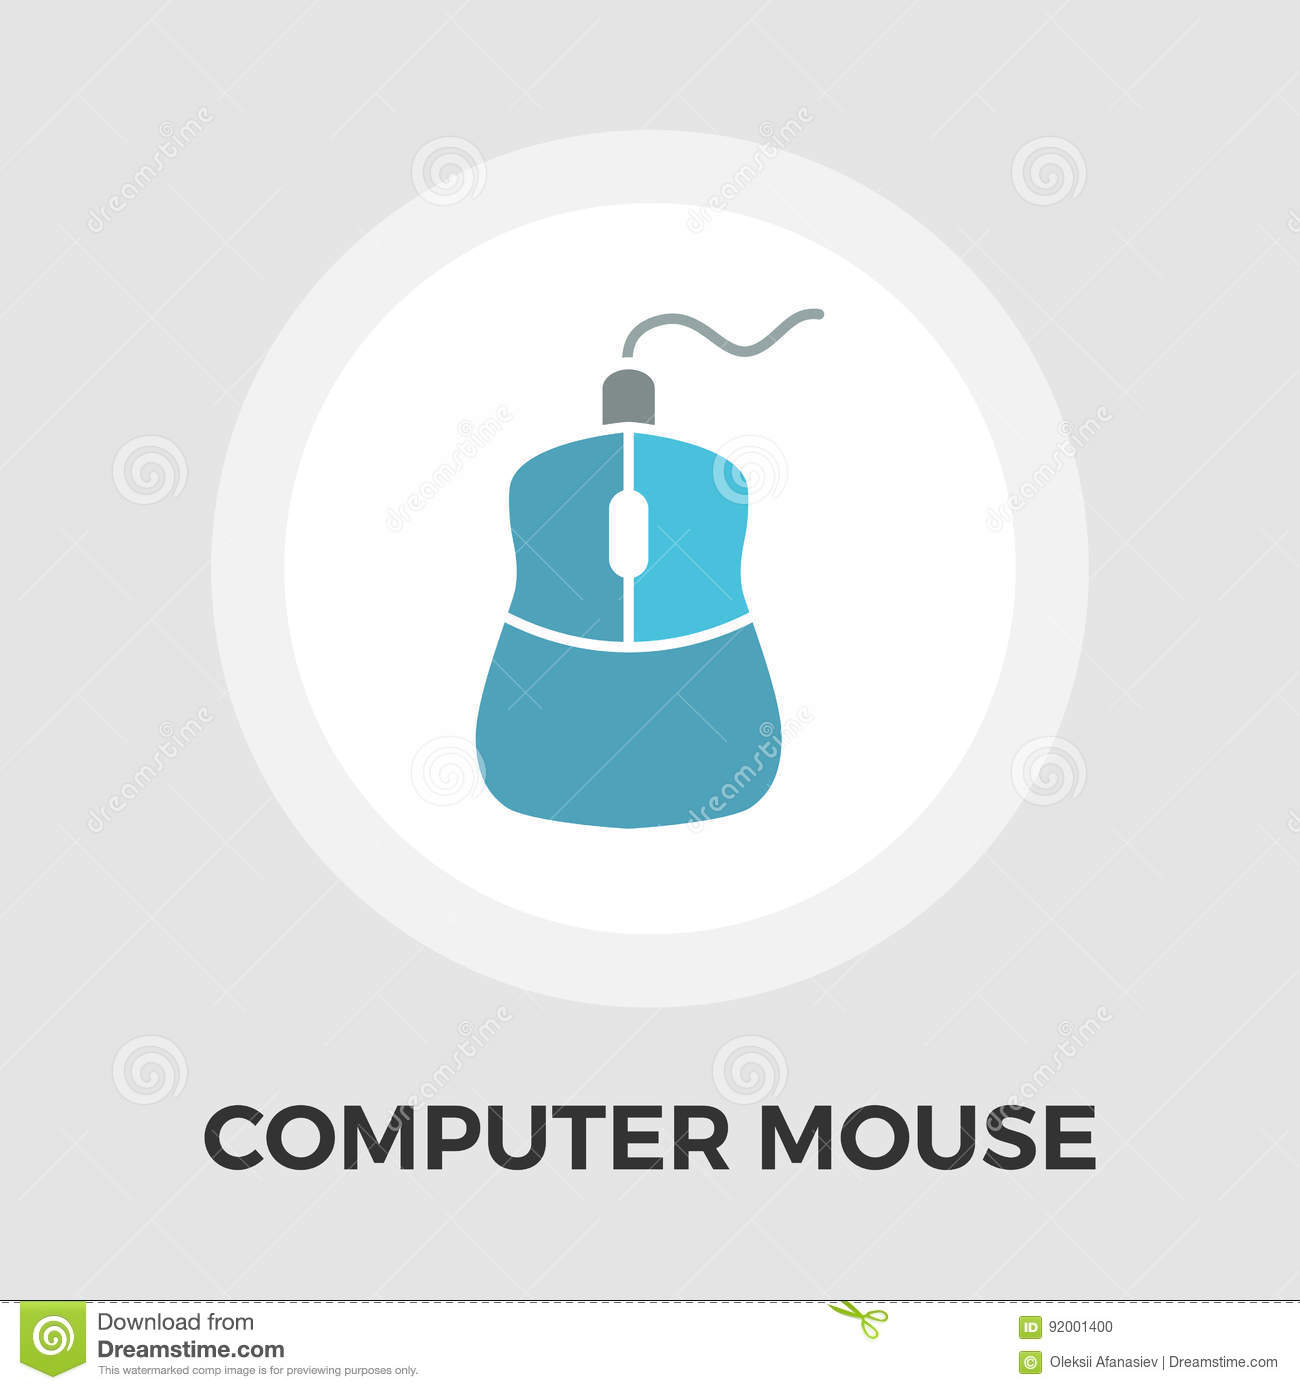 Computer Mouse Flat Icon Stock Vector Illustration Of Part 92001400 Diagram In This